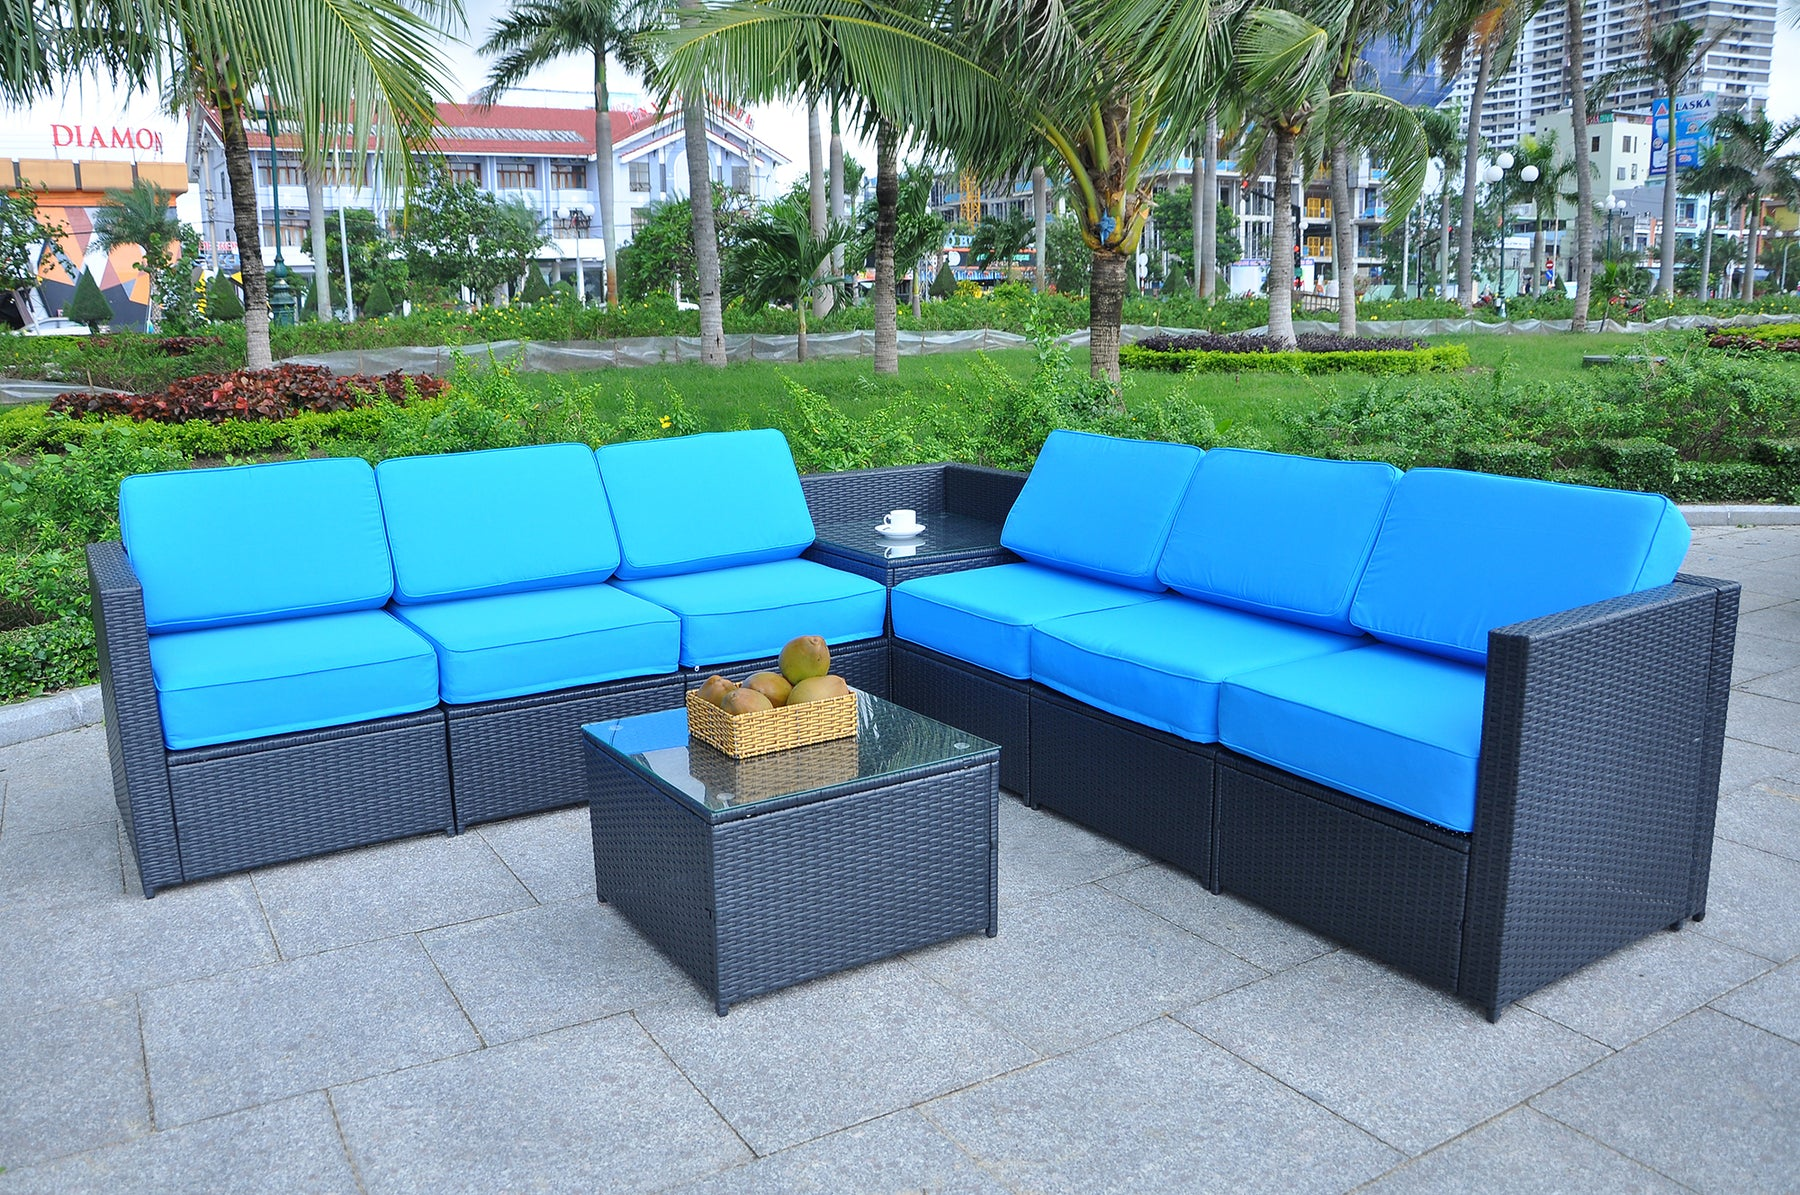 Mcombo Outdoor Patio Black Wicker Furniture Sectional Set All-Weather Resin  Rattan Chair Conversation Sofas with Water Resistant Cushion Covers 6085 ...